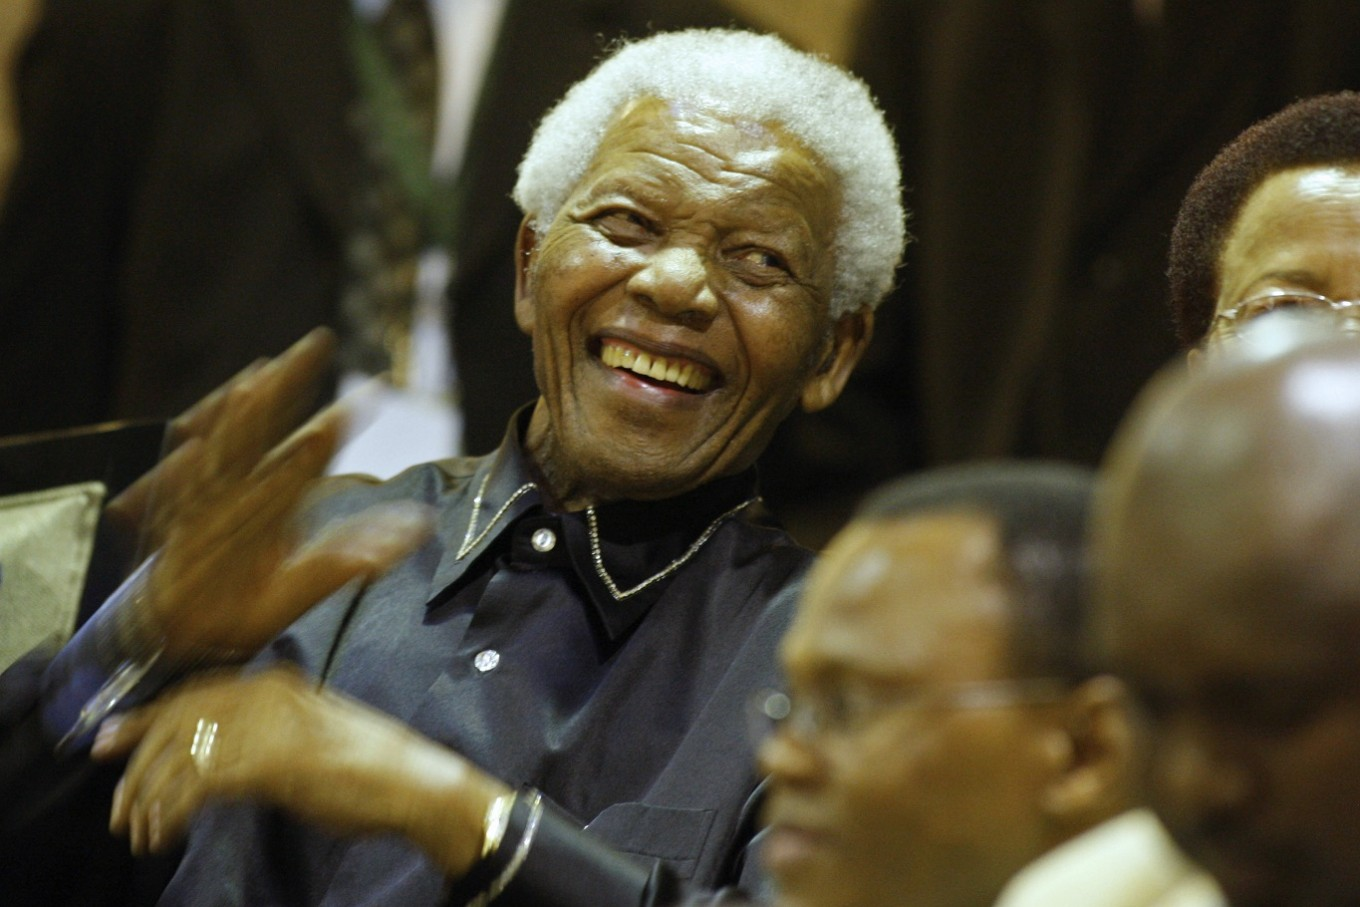 Sequel launched to Mandela's 'Long Walk' autobiography